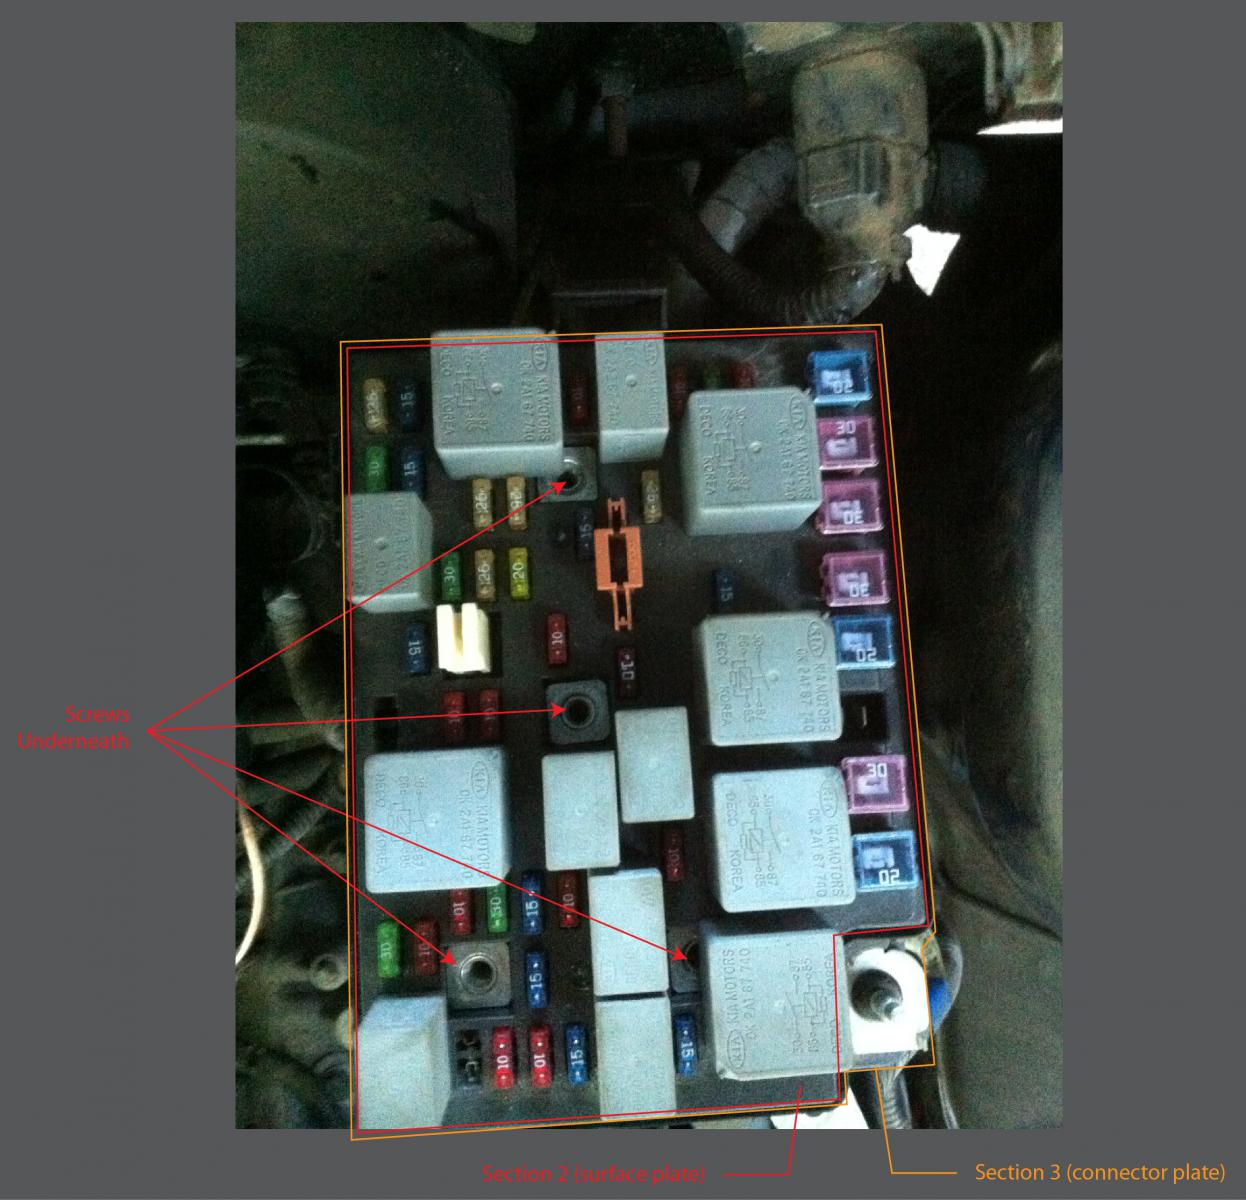 hight resolution of 02 kia spectra fuse box simple wiring diagram 2003 kia sorento fuse box diagram 02 kia